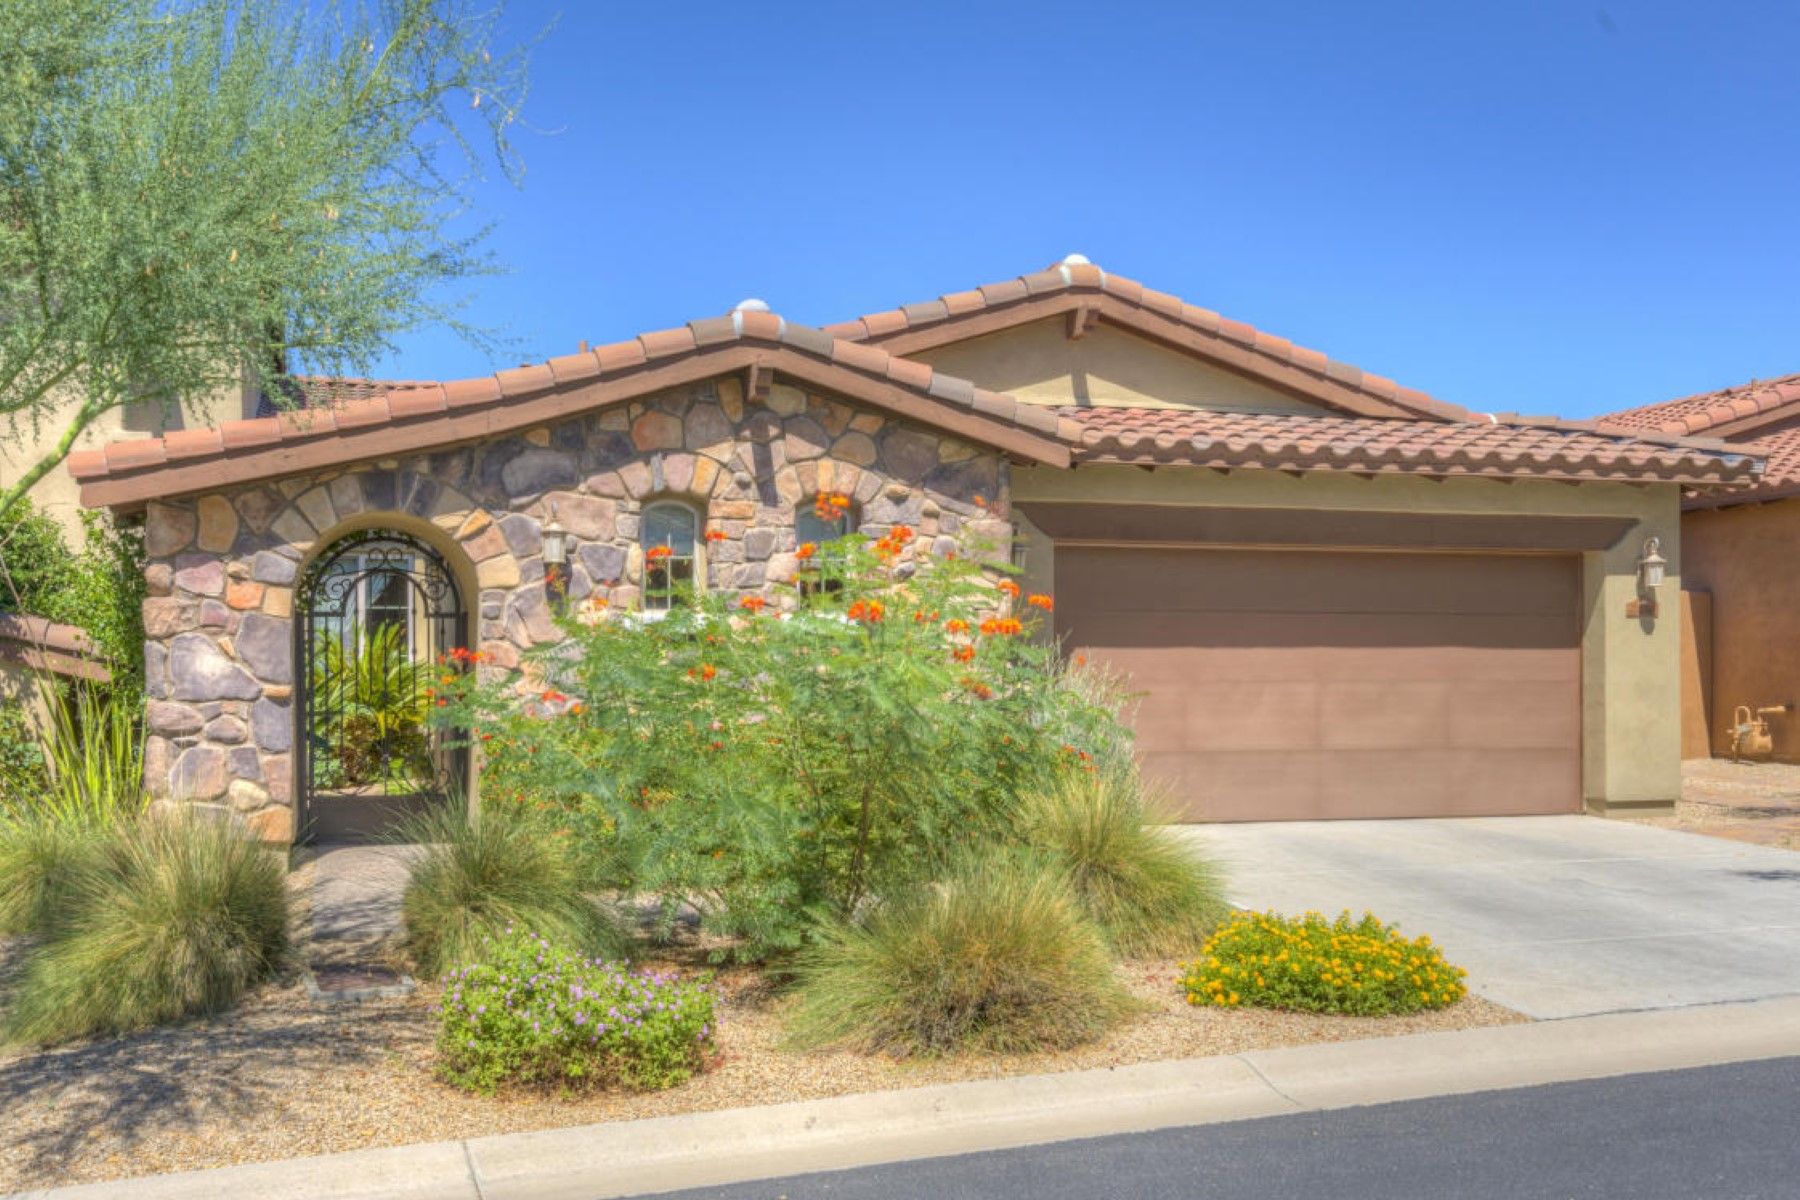 Villetta a schiera per Vendita alle ore Immaculate and beautifully upgraded and decorated home 7250 E Eclipes Dr Scottsdale, Arizona, 85266 Stati Uniti